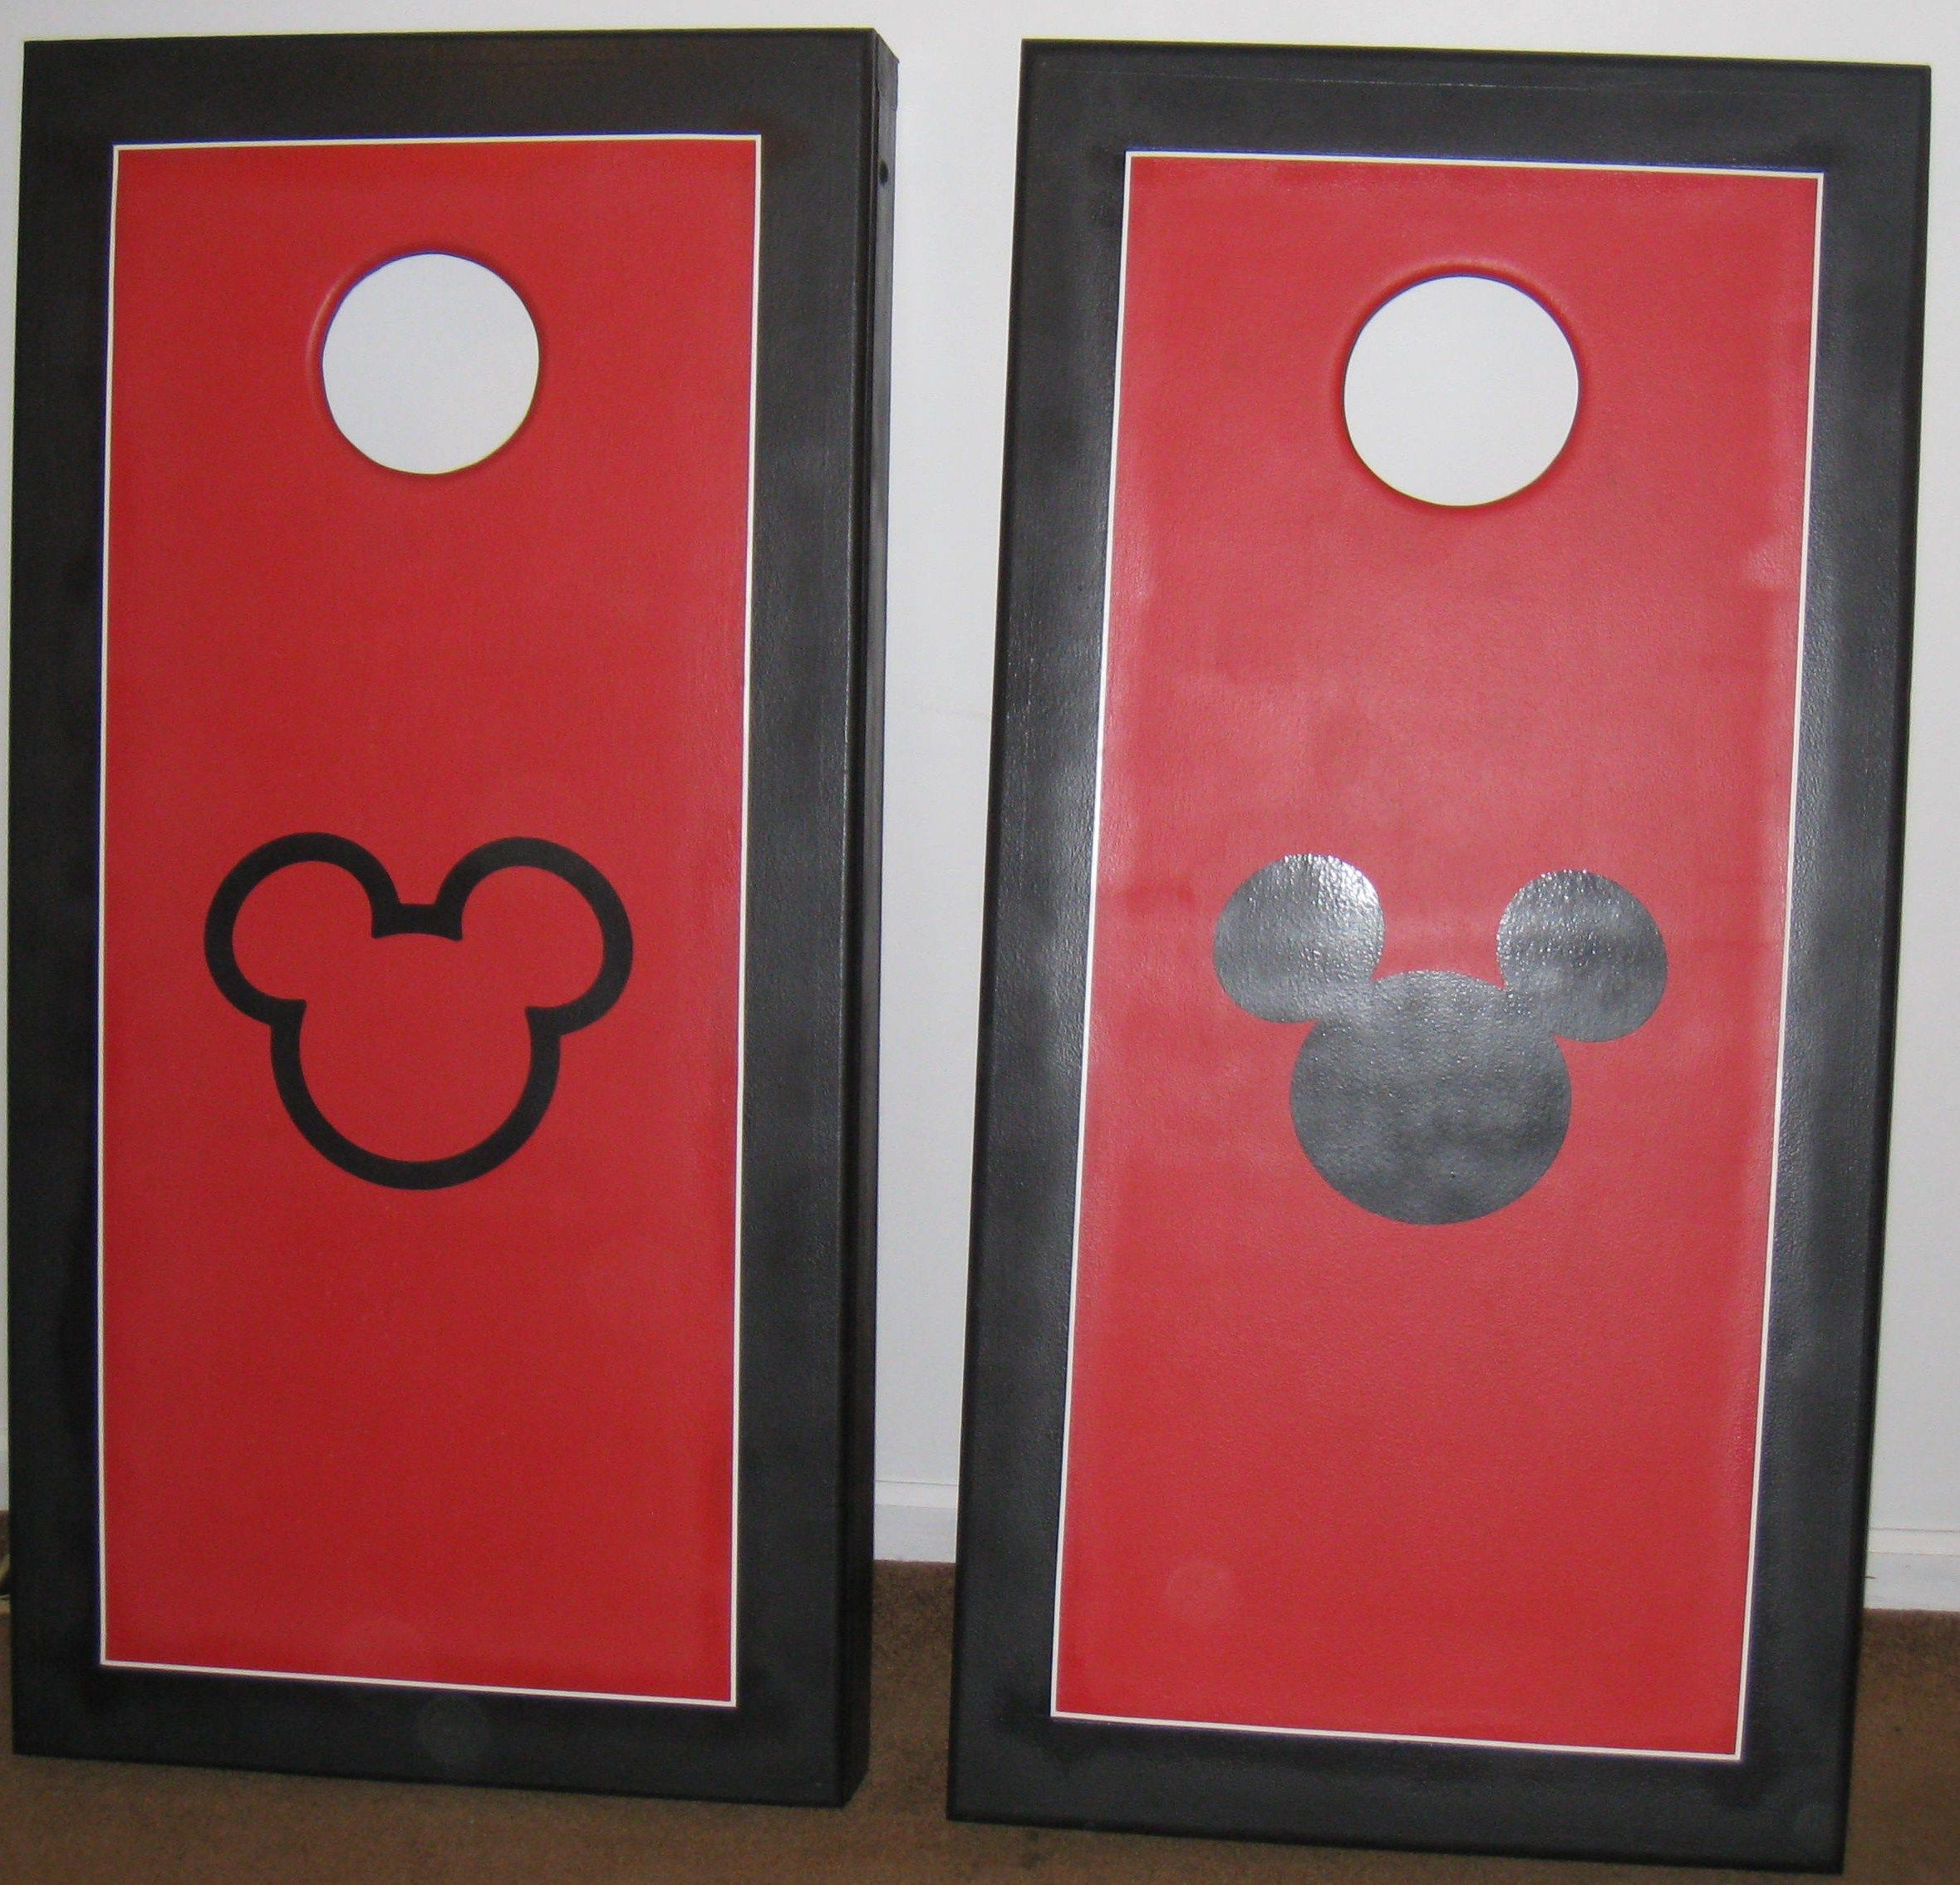 my husband u0026 i made these mickey mouse corn hole sets for my parents last year - Corn Hole Sets